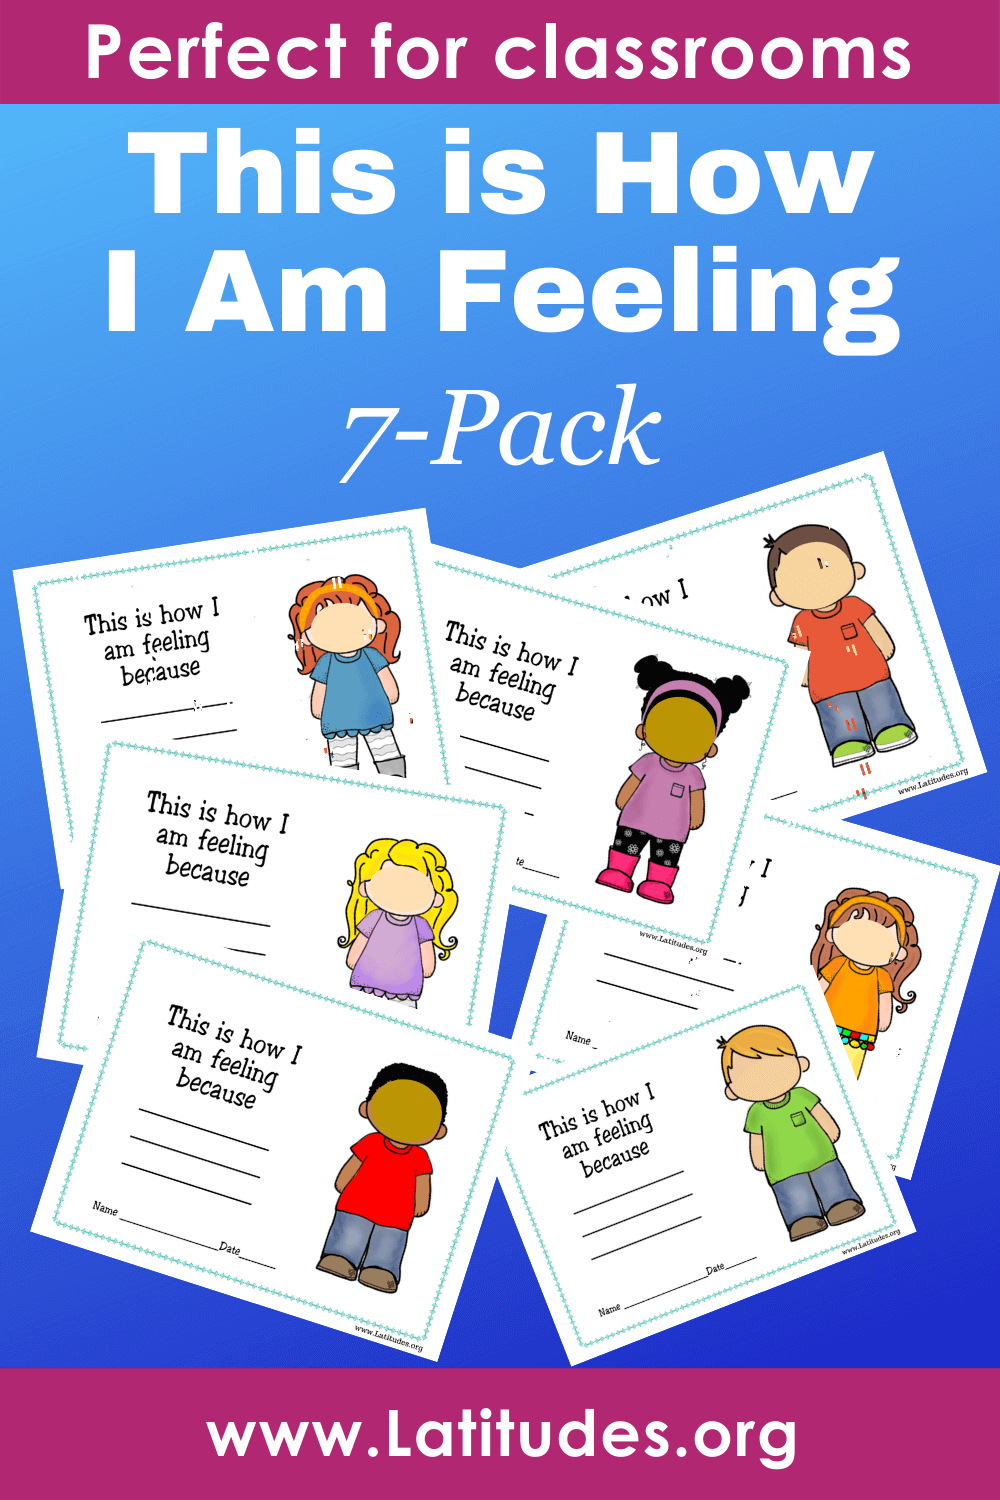 This is How I am Feeling - Draw Your Feelings (7 Pack)